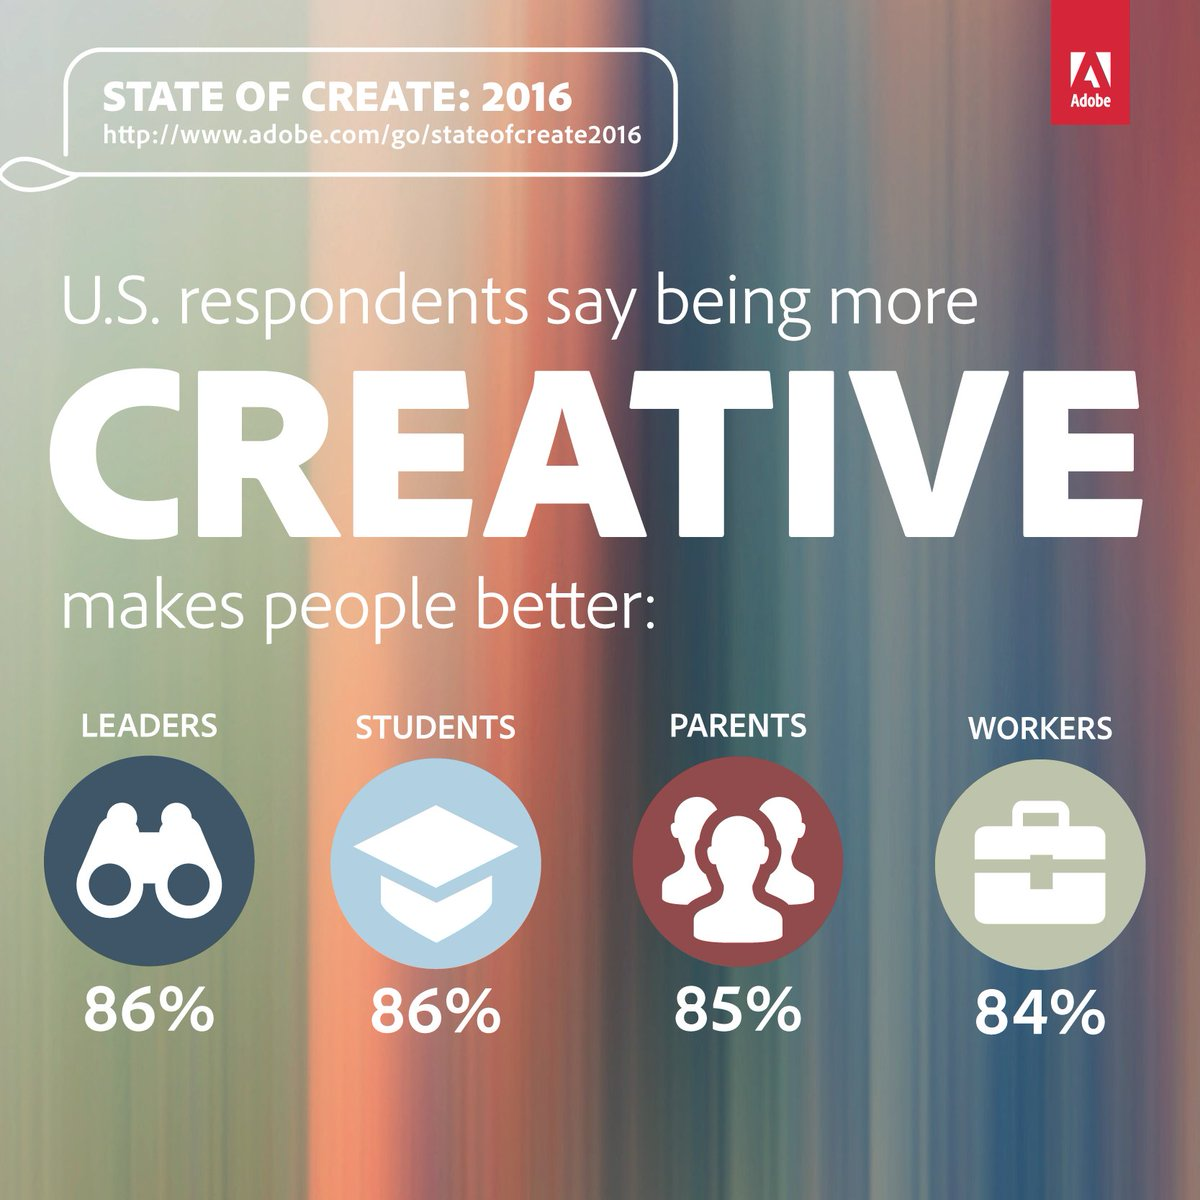 Learnings from the State of Create 2016 https://t.co/fURtUzByk9